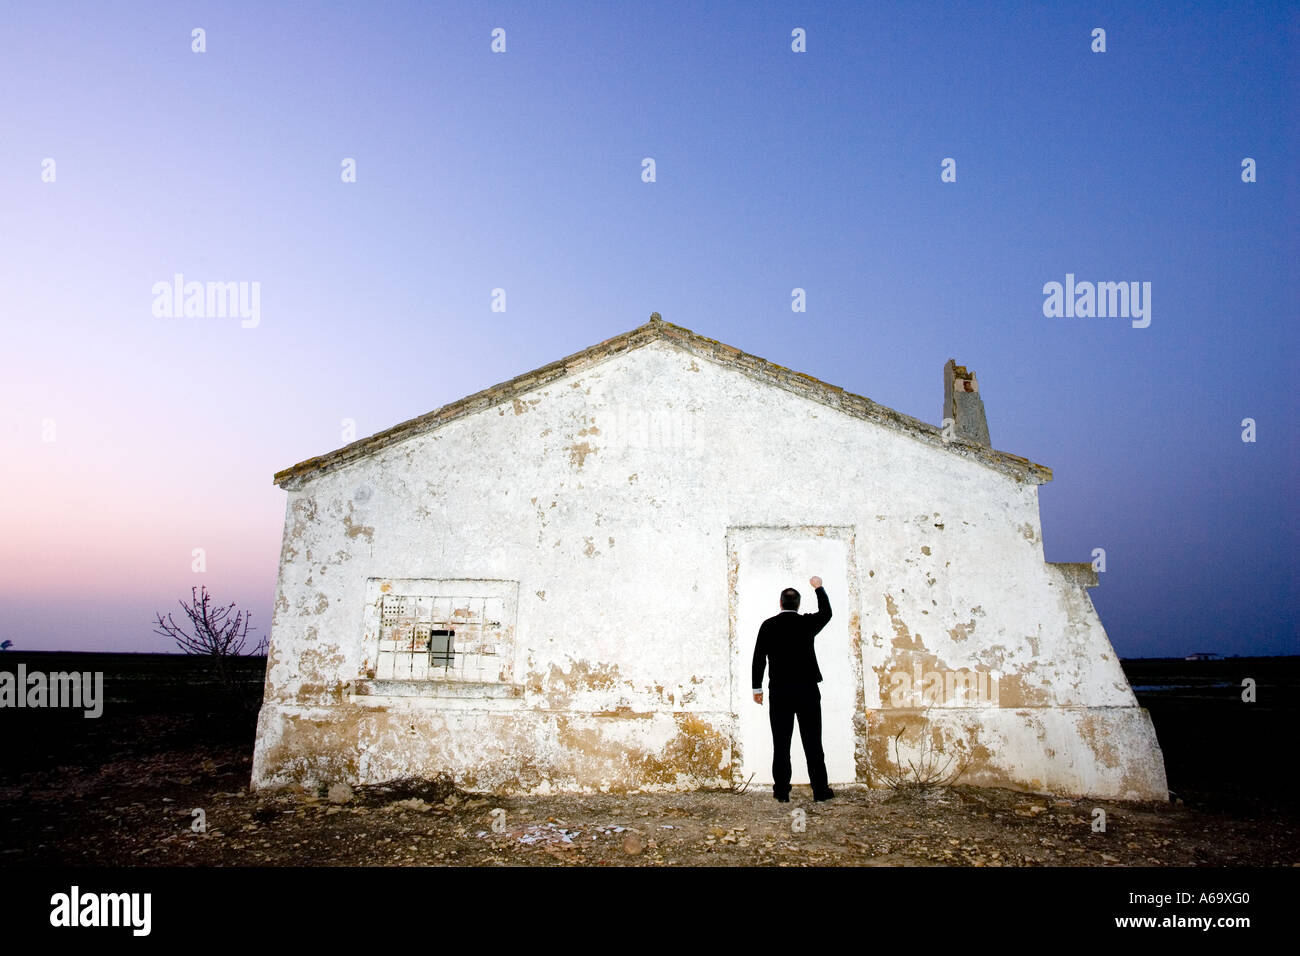 Man knocking on an abandoned house blocked off door at dusk. image conveys a sense of loneliness, despair and desolation - Stock Image